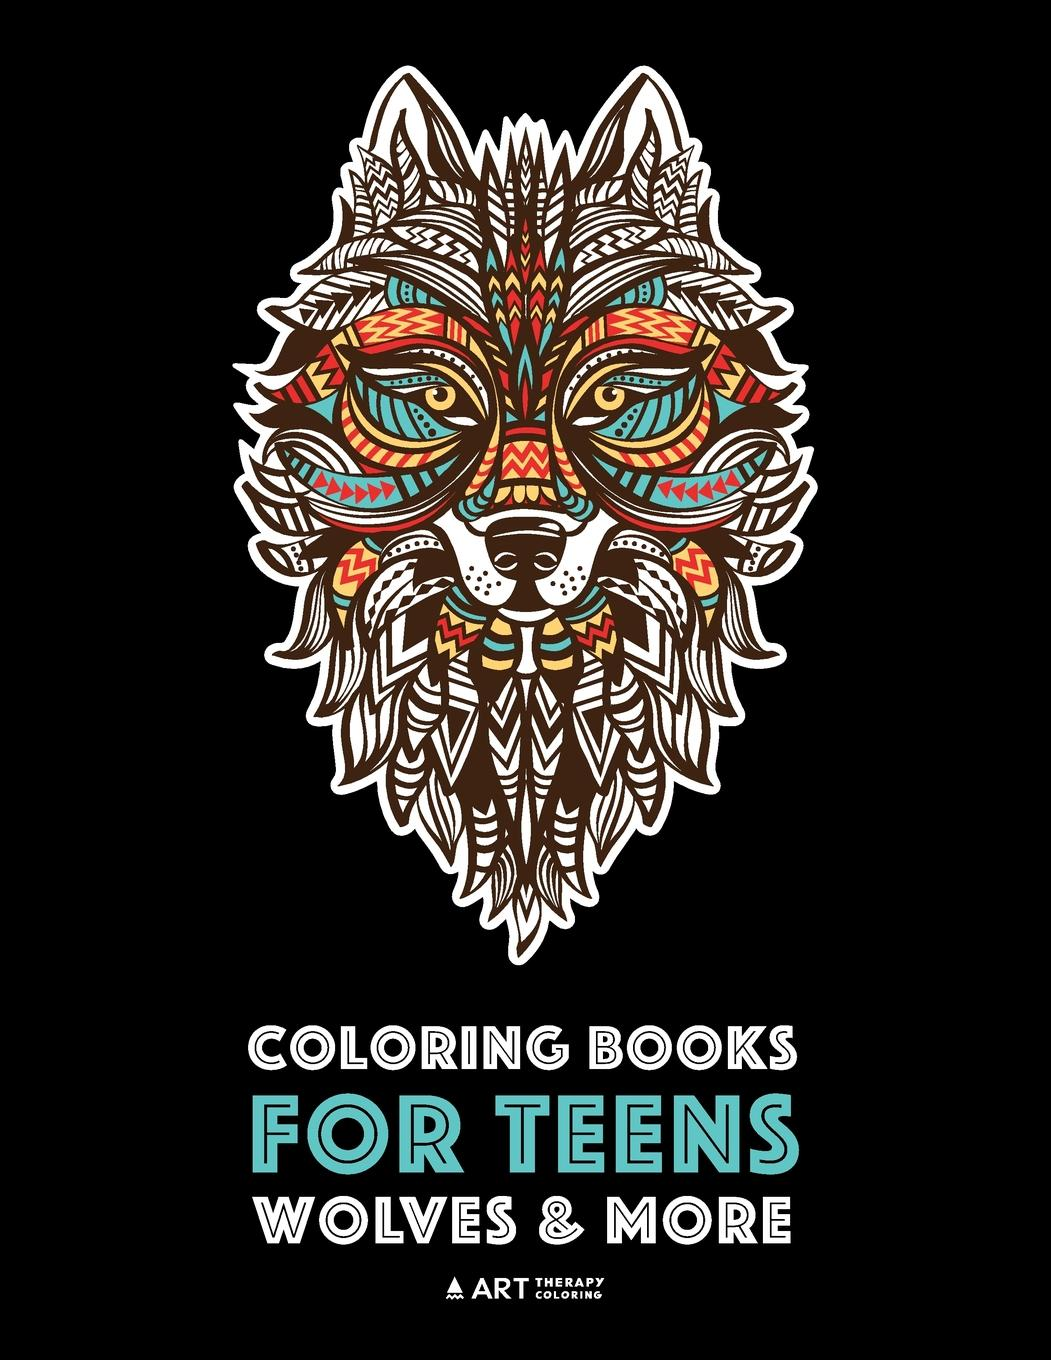 - Coloring Books For Teens: Wolves & More: Advanced Animal Coloring Pages For  Teenagers, Tweens, Older Kids, Boys & Girls, Zendoodle Animals, Wolves,  Lions, Tigers & More, Creative Art Pages, Art Therap -